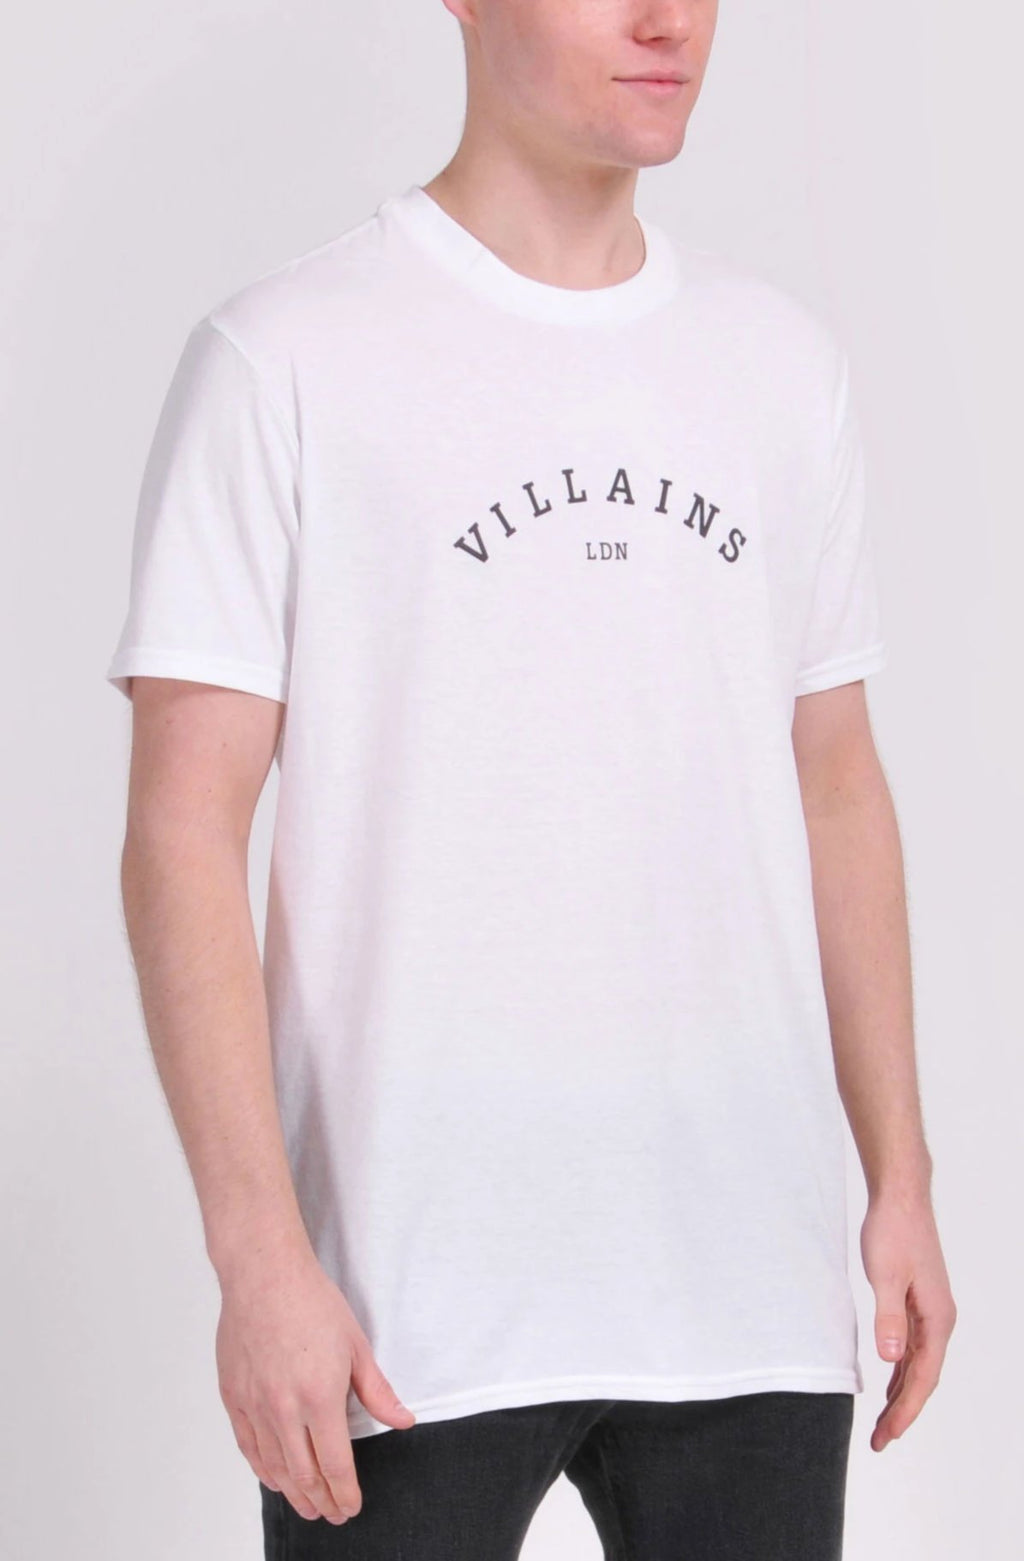 White Villains LDN T-Shirt